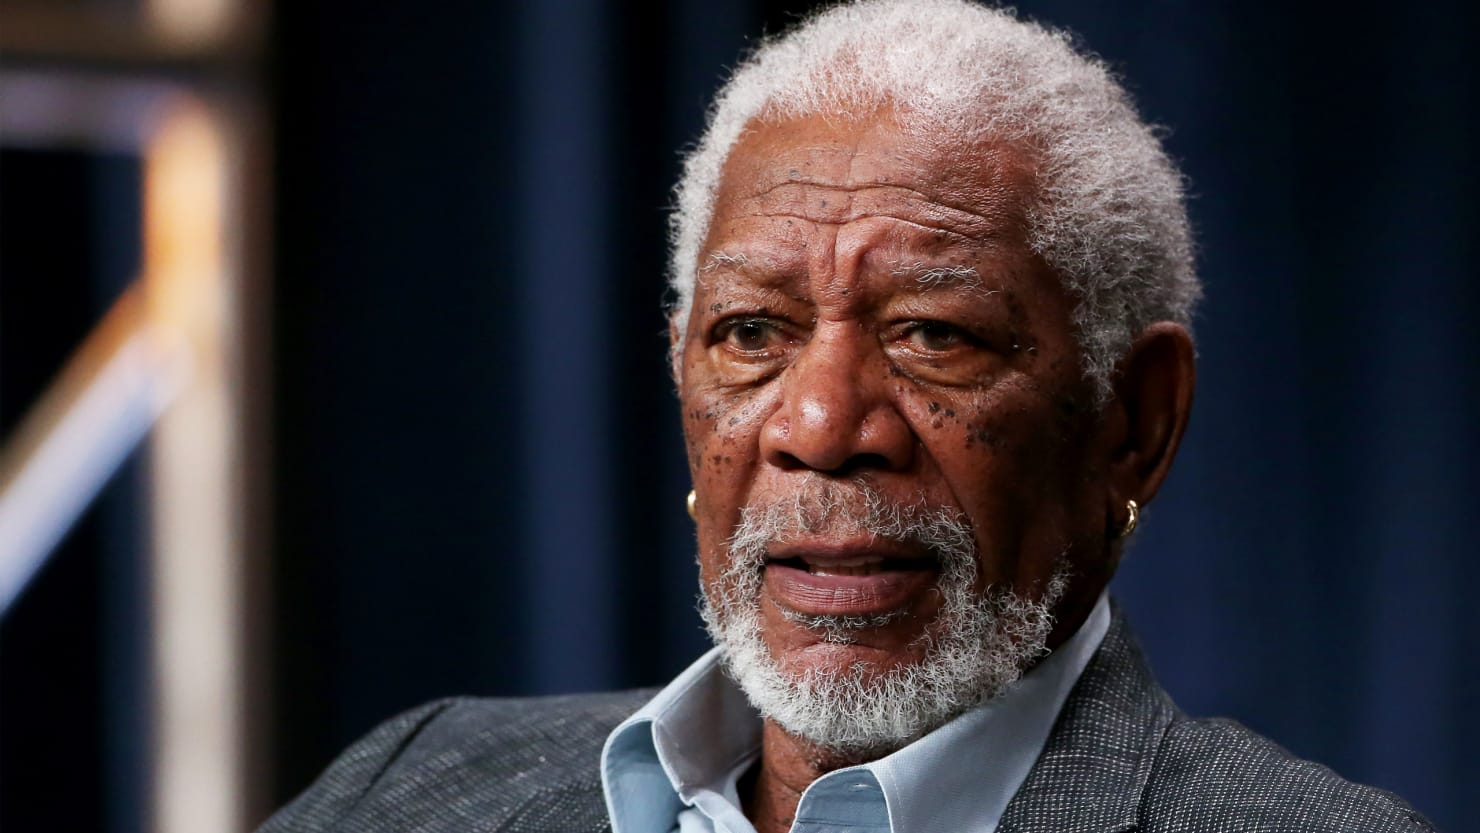 CNN Blasts Morgan Freeman's Attorney in Fiery Letter: We're Not Afraid to Go to Court